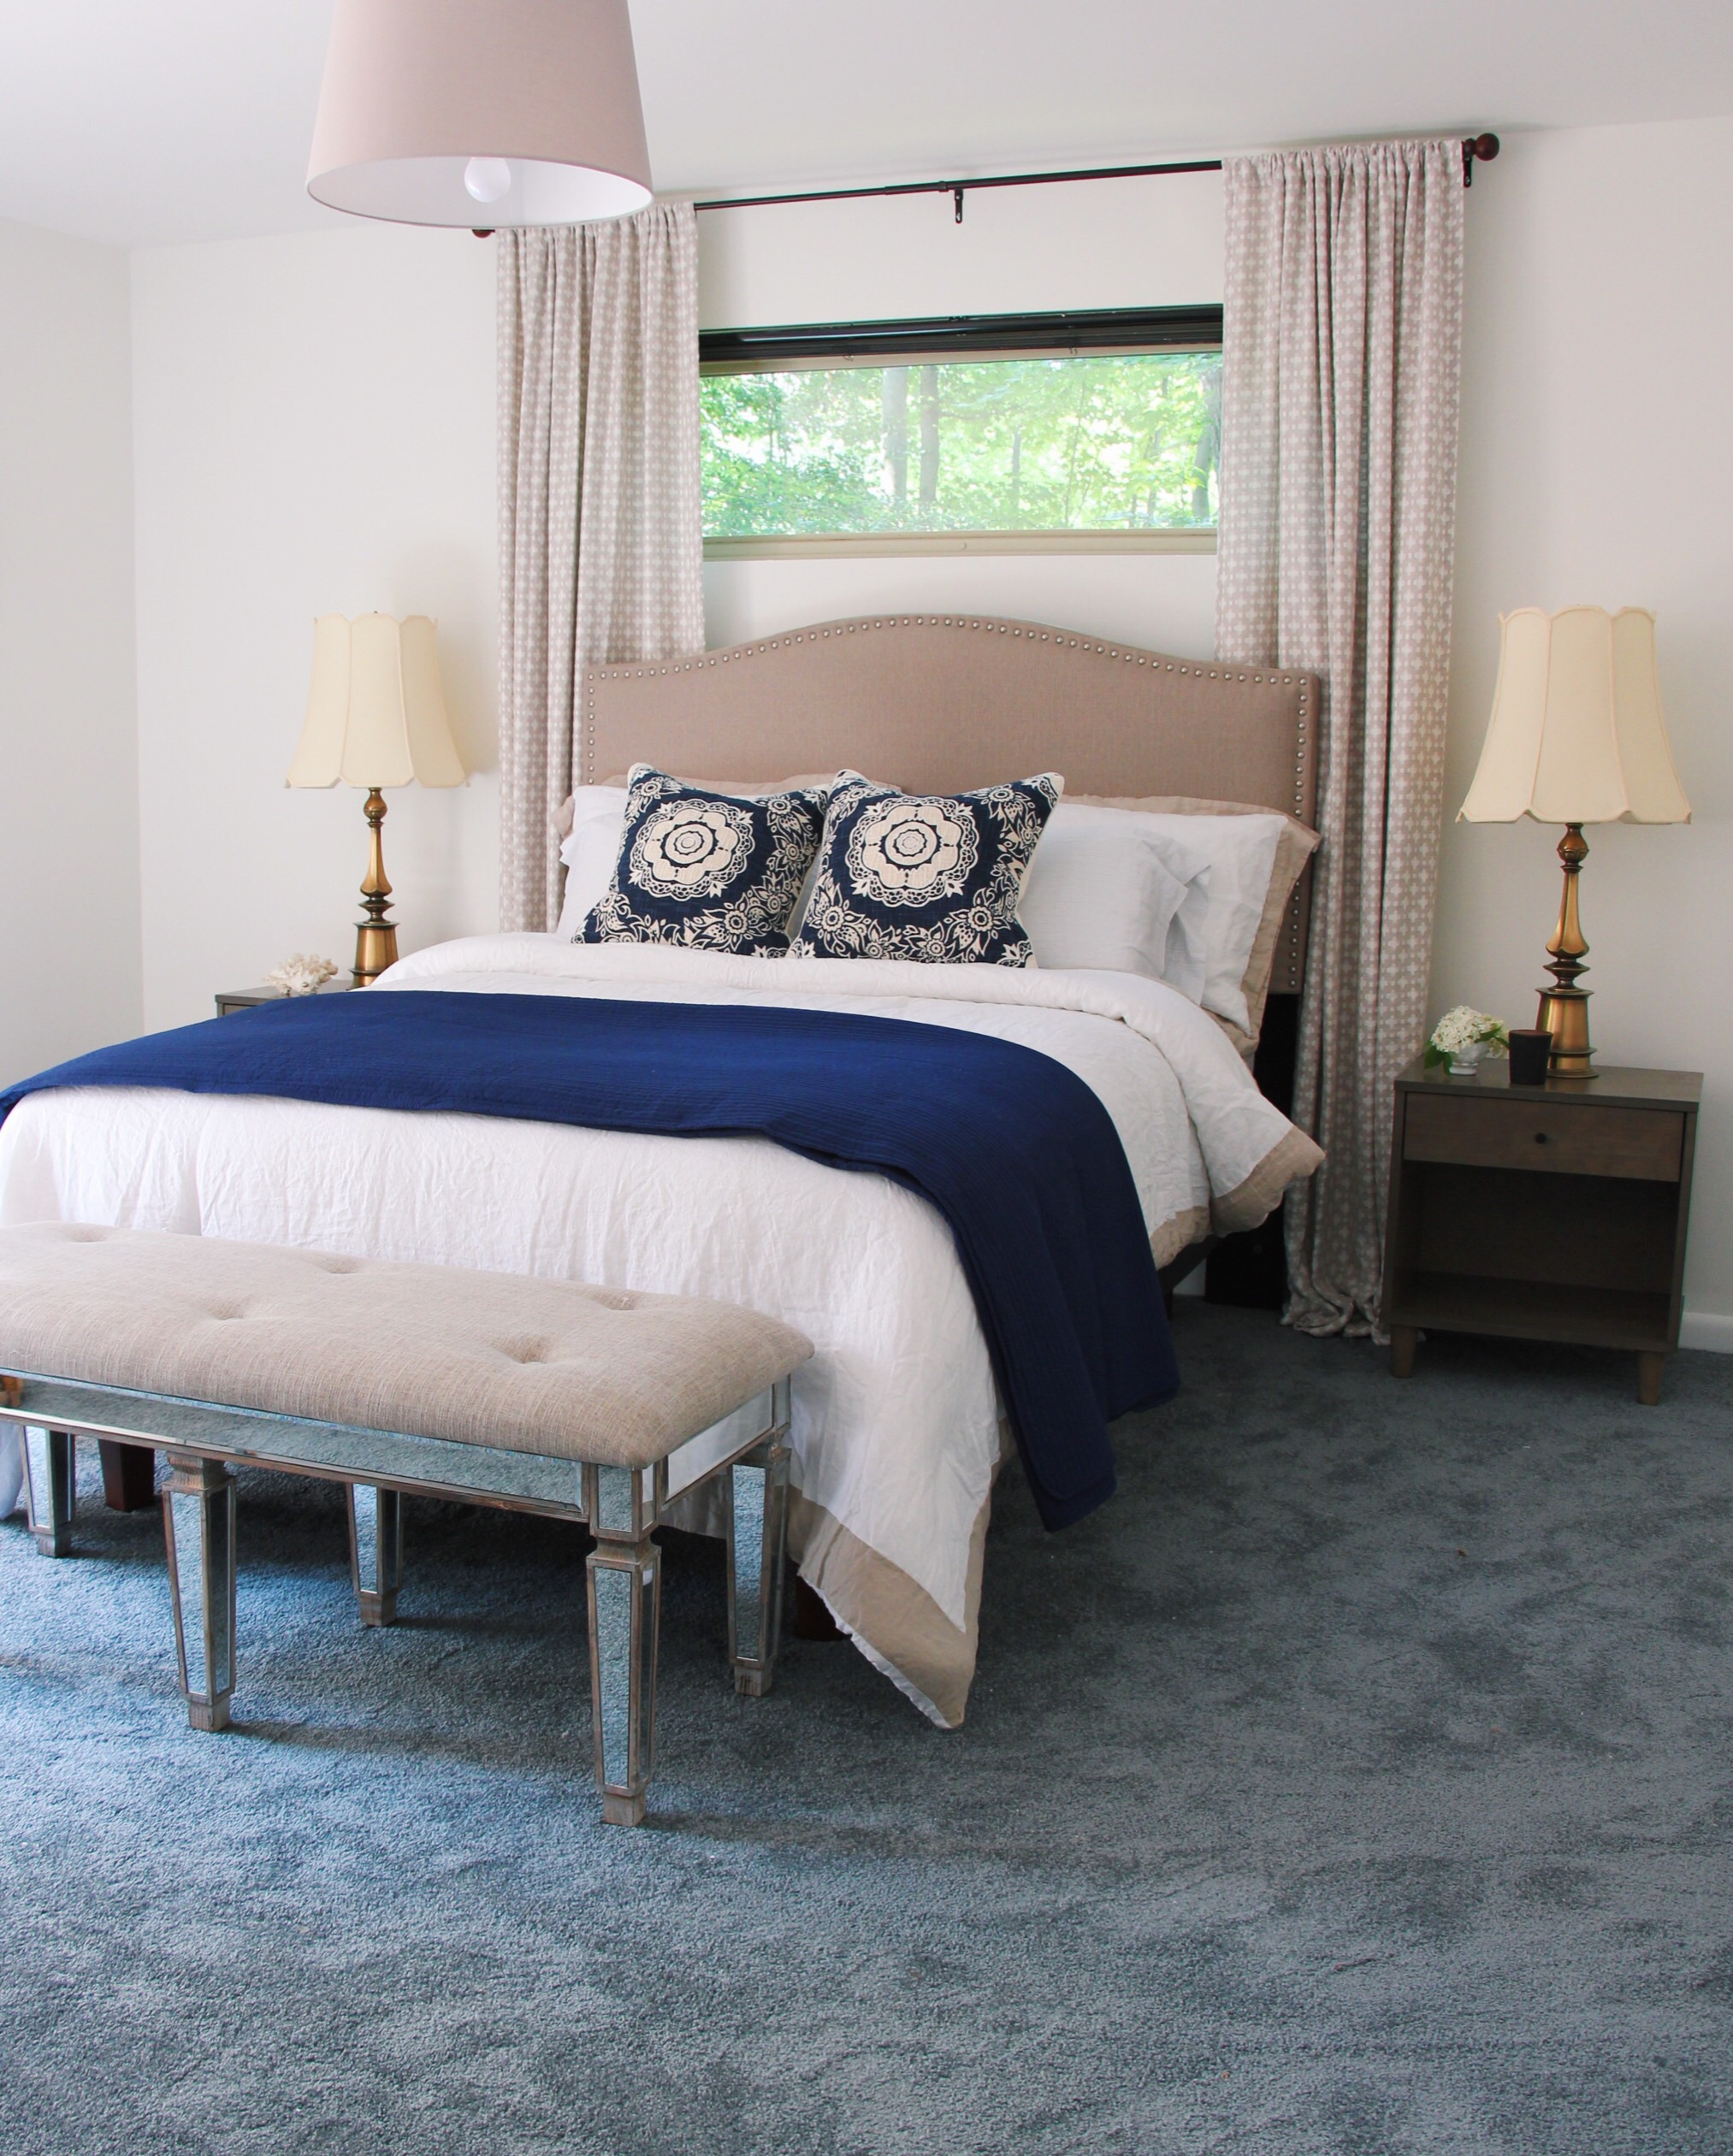 The master bedroom in a mix of blues and neutrals. Designed to rest and recharge.